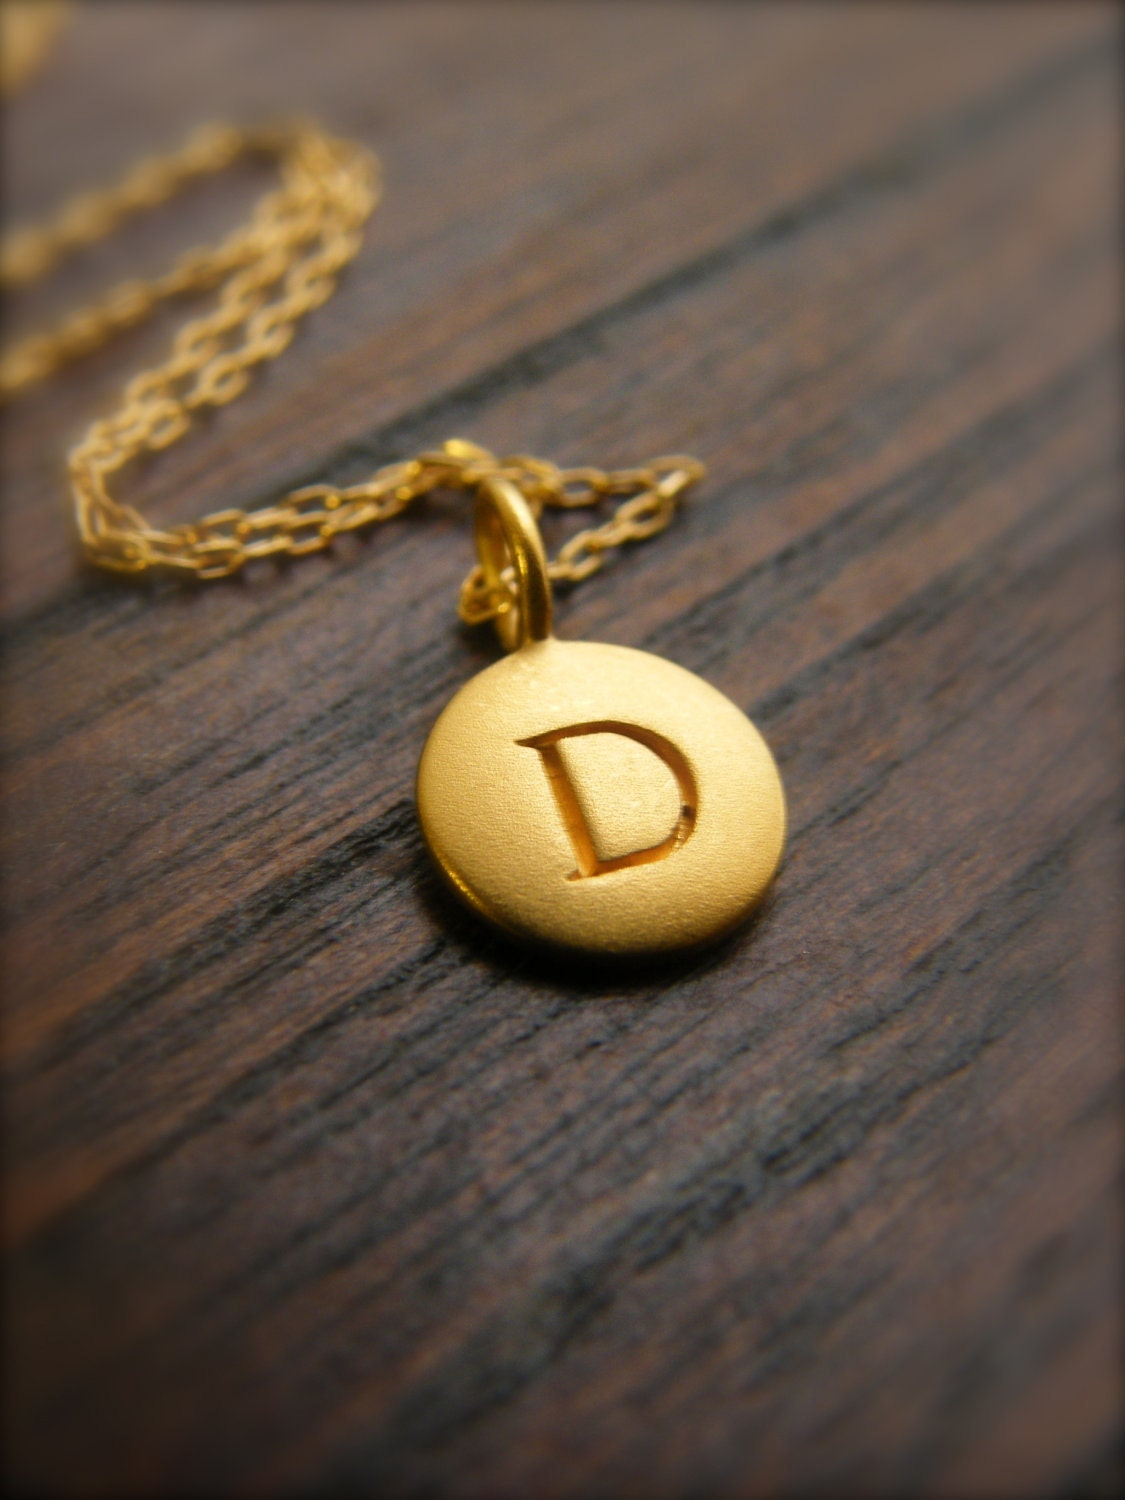 personalized initial pendant disc 14k gold fill necklace. Black Bedroom Furniture Sets. Home Design Ideas